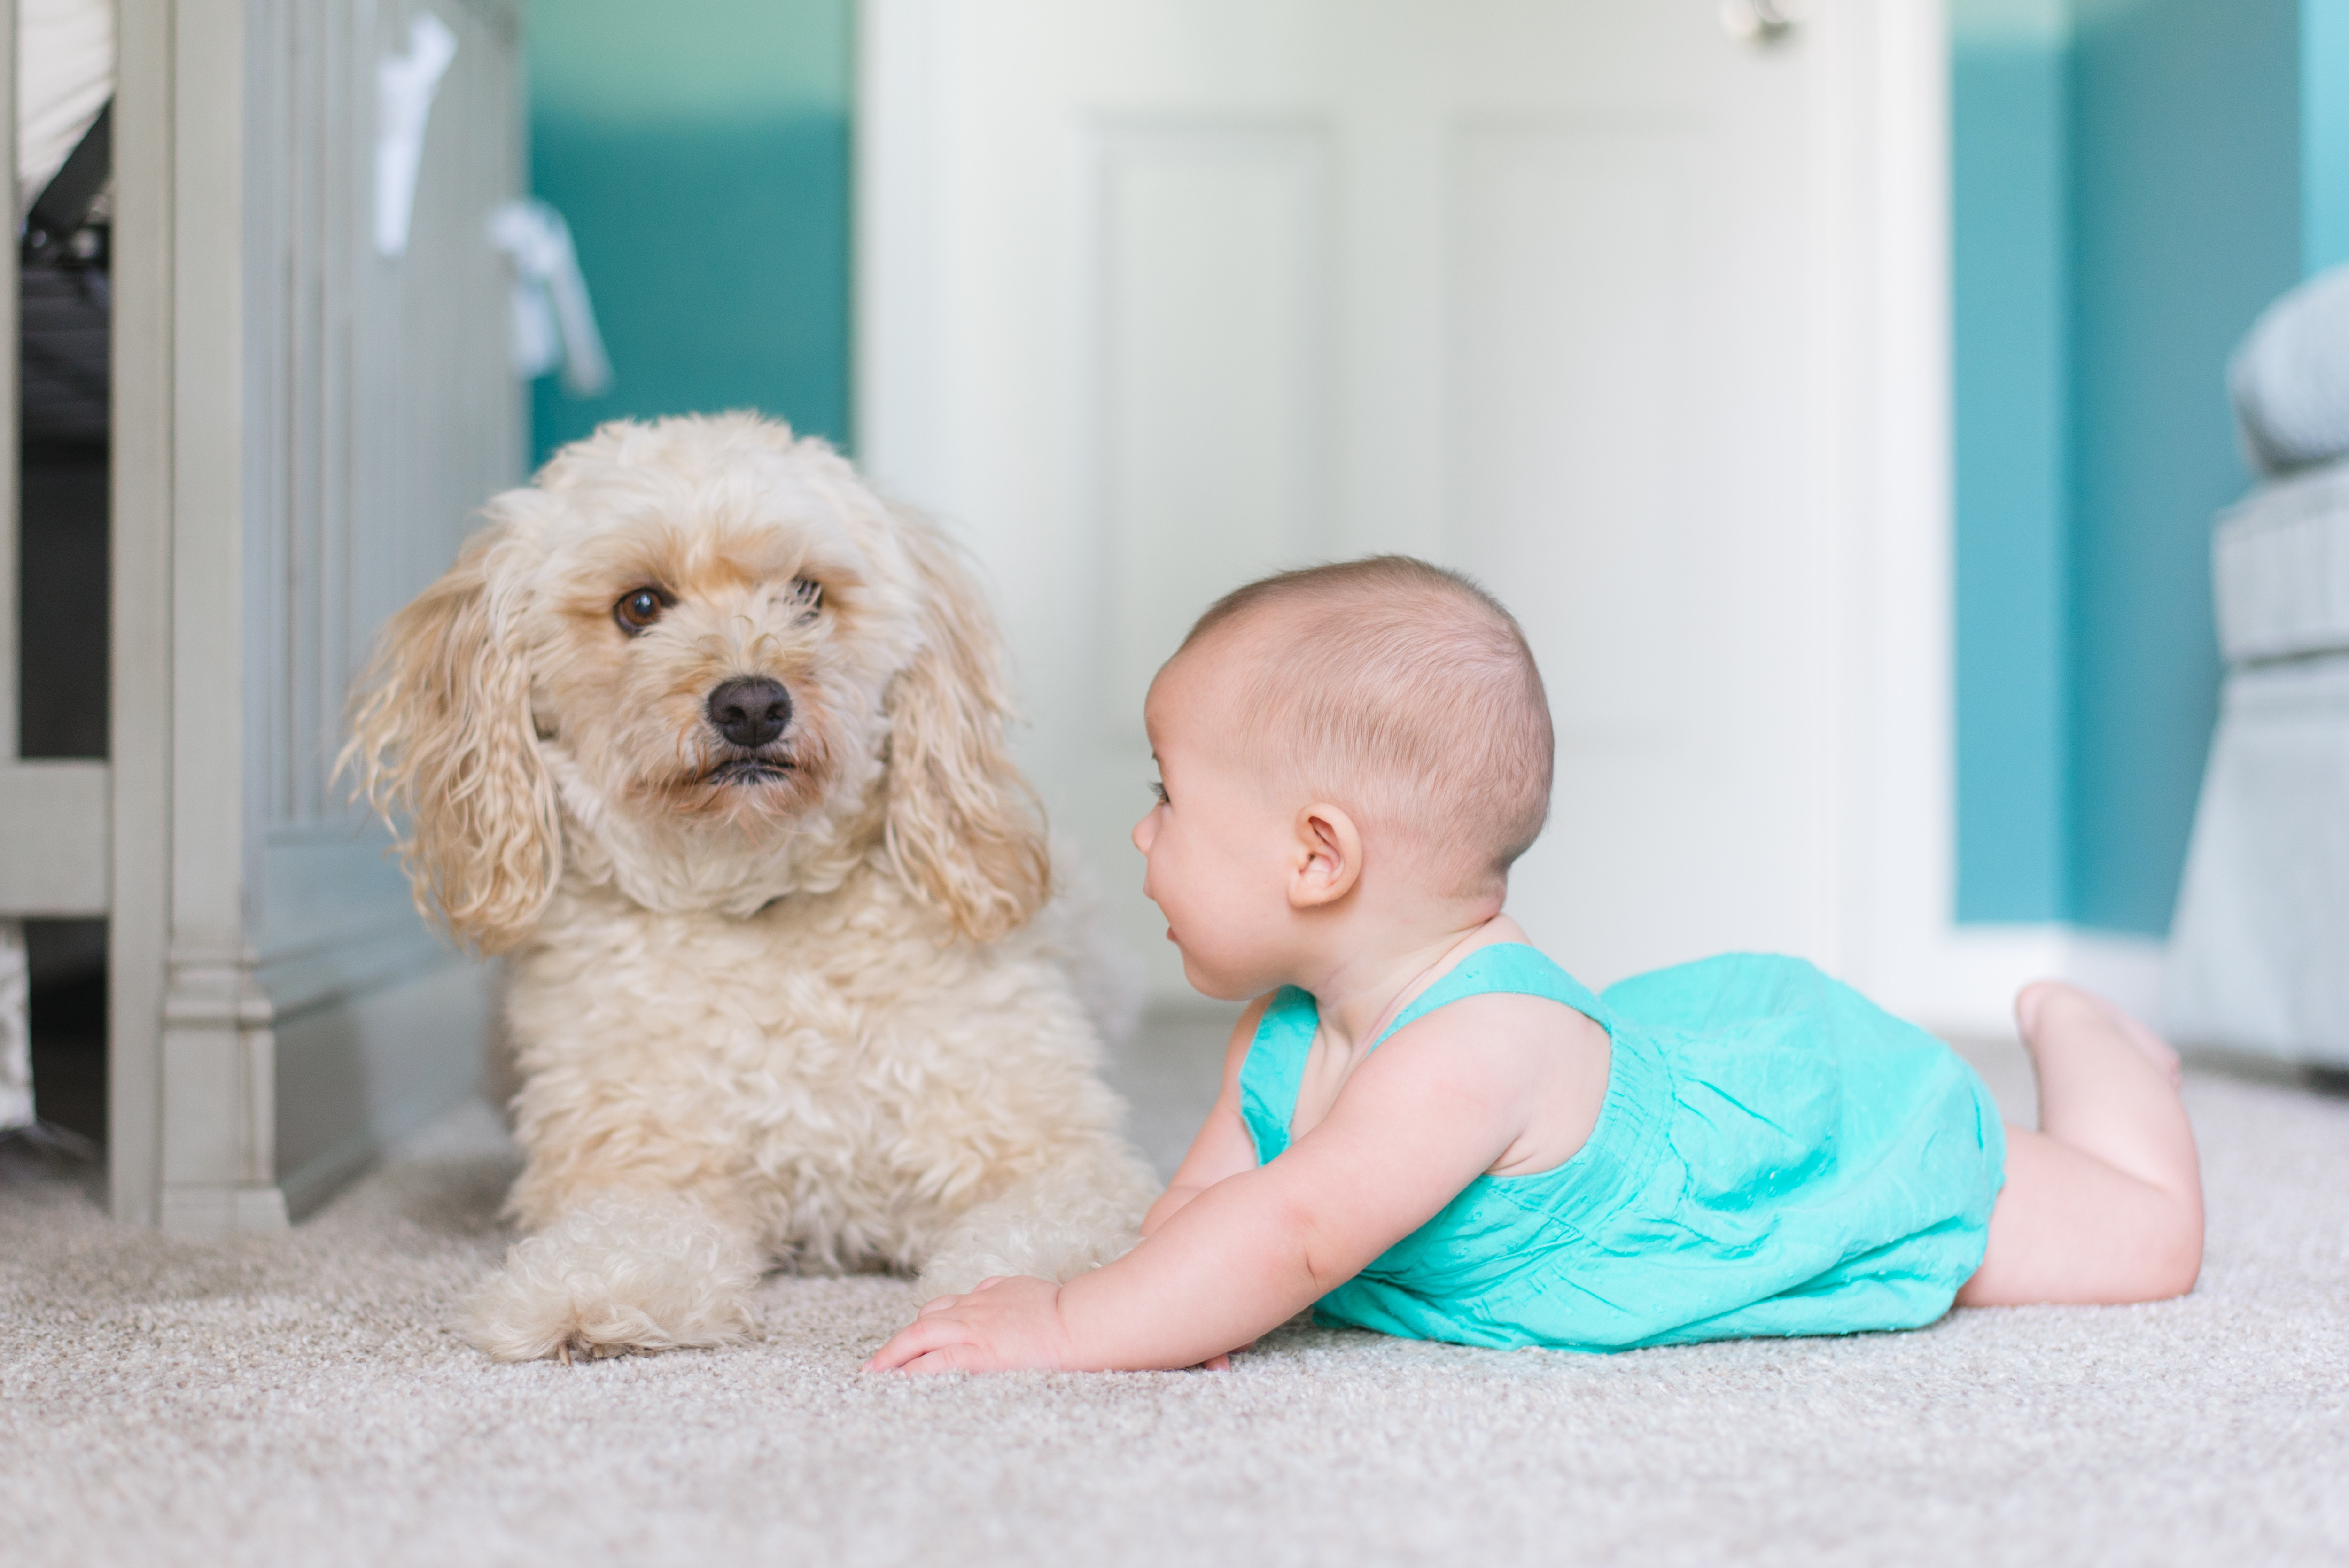 Cute baby laying on the floor with a cute dog.